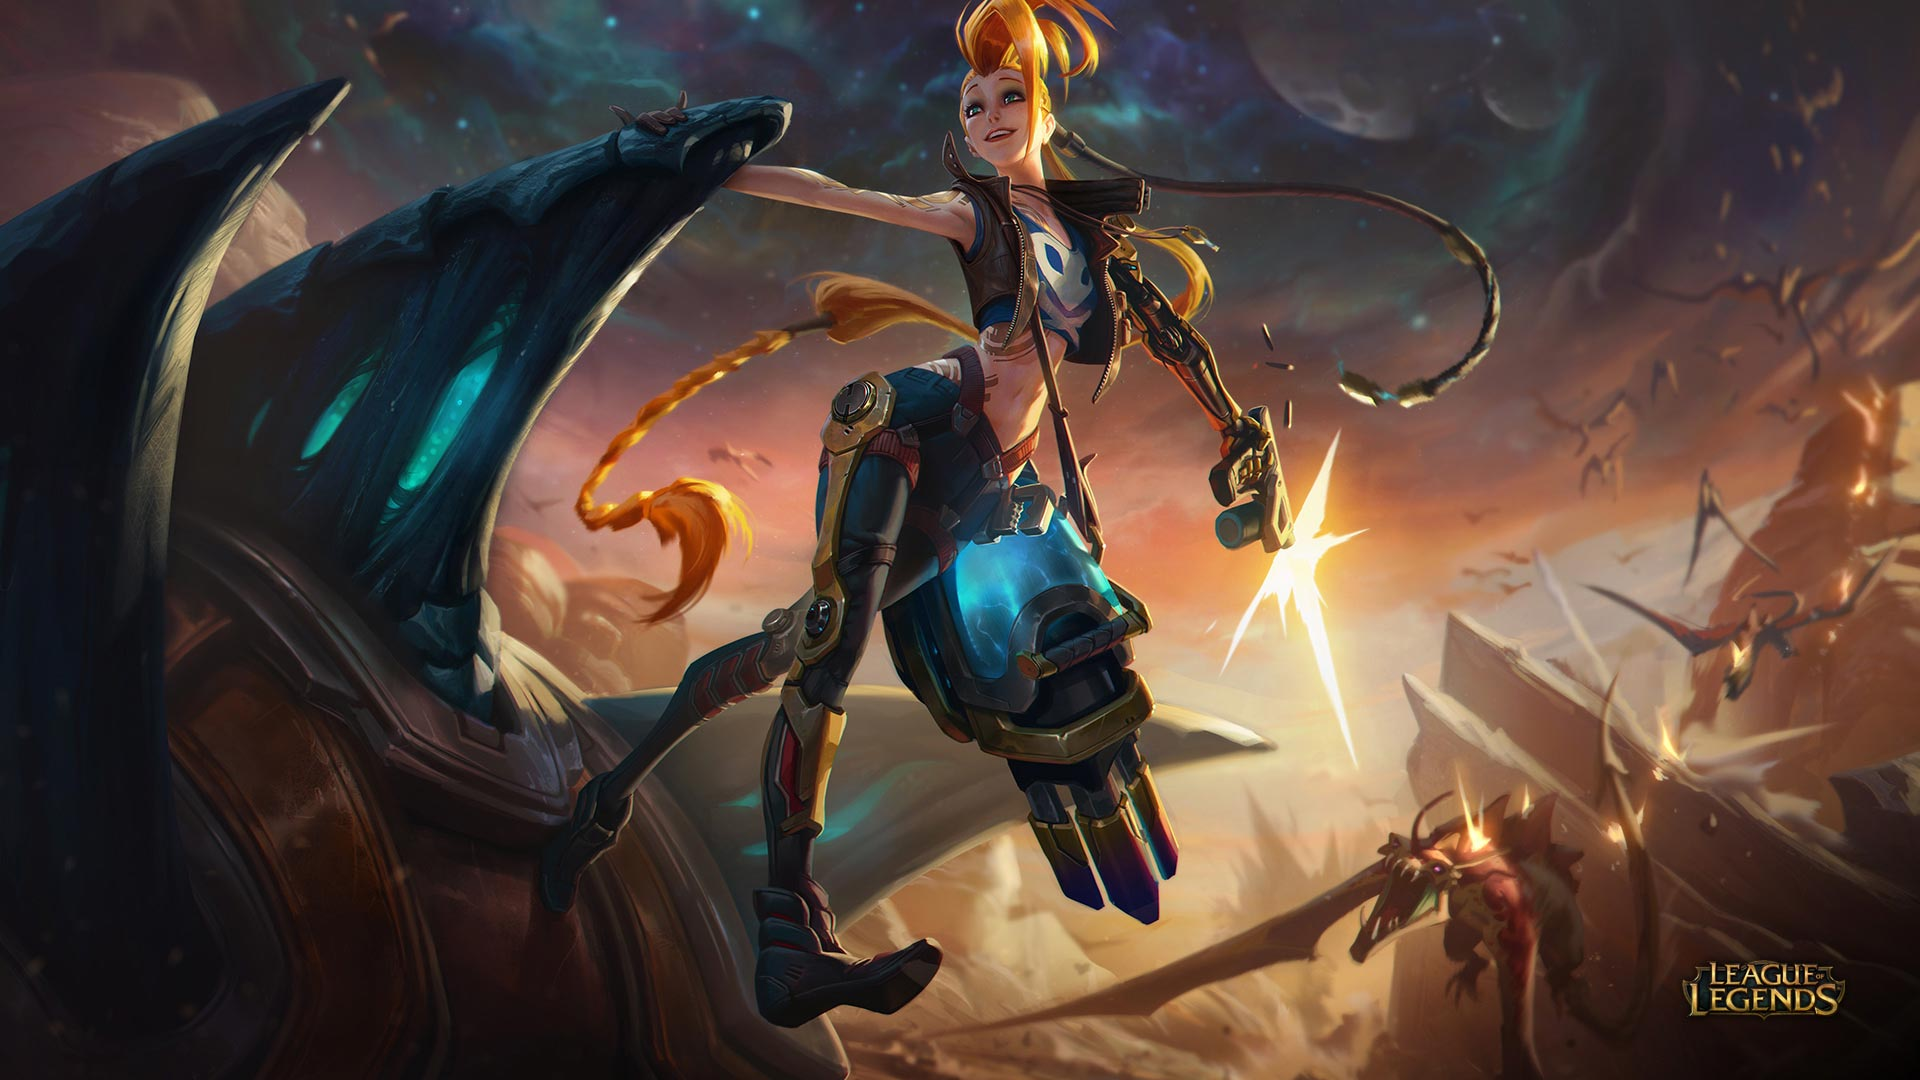 New skin for Jinx in League of Legends: Odyssey Extraction